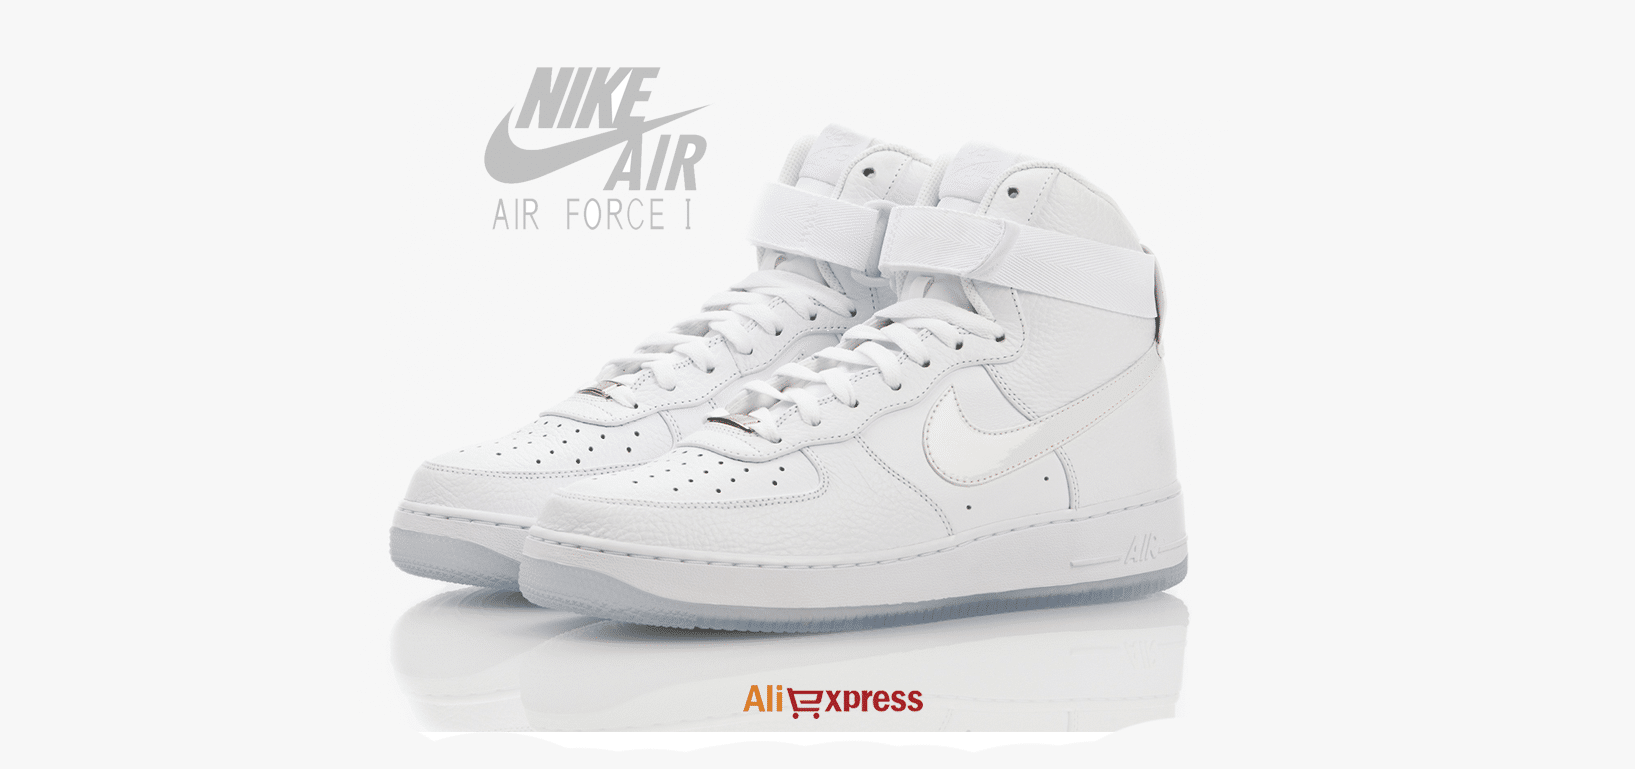 Guide to buy cheap Nike Air Force on AliExpress 2020